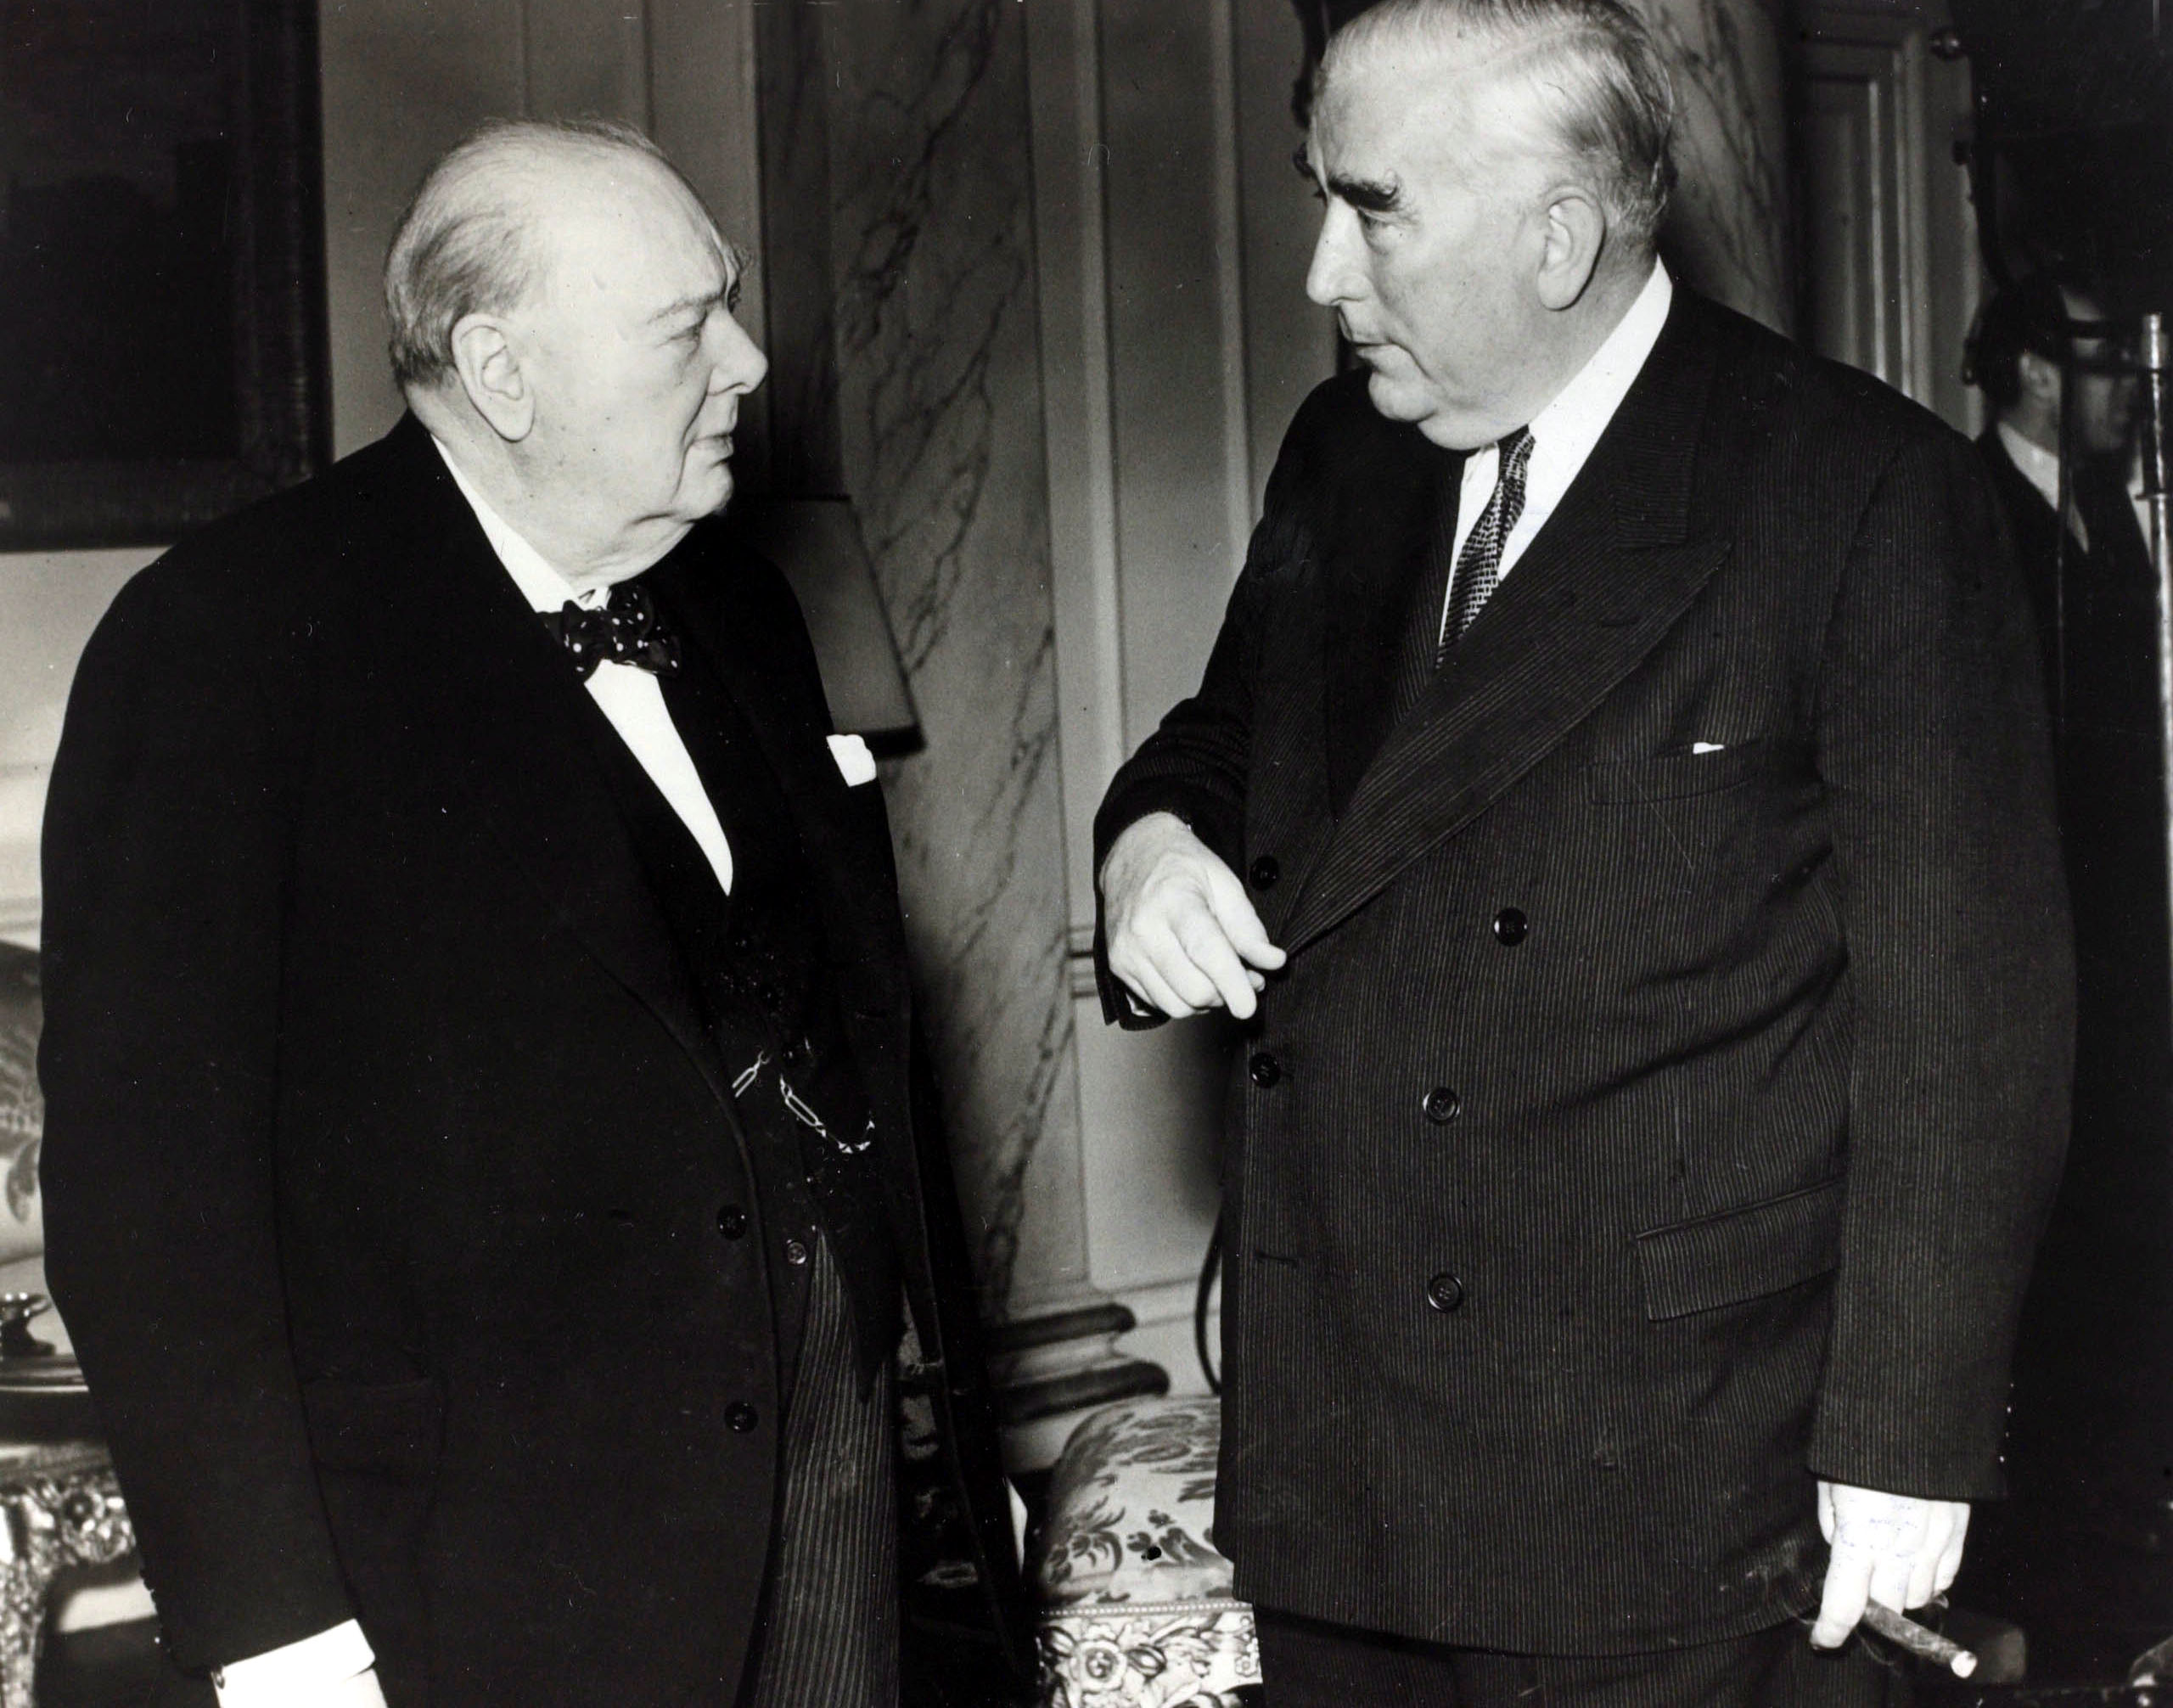 Robert Menzies meets Winston Churchill at the Commonwealth Conference of Prime Ministers in London, January 1955